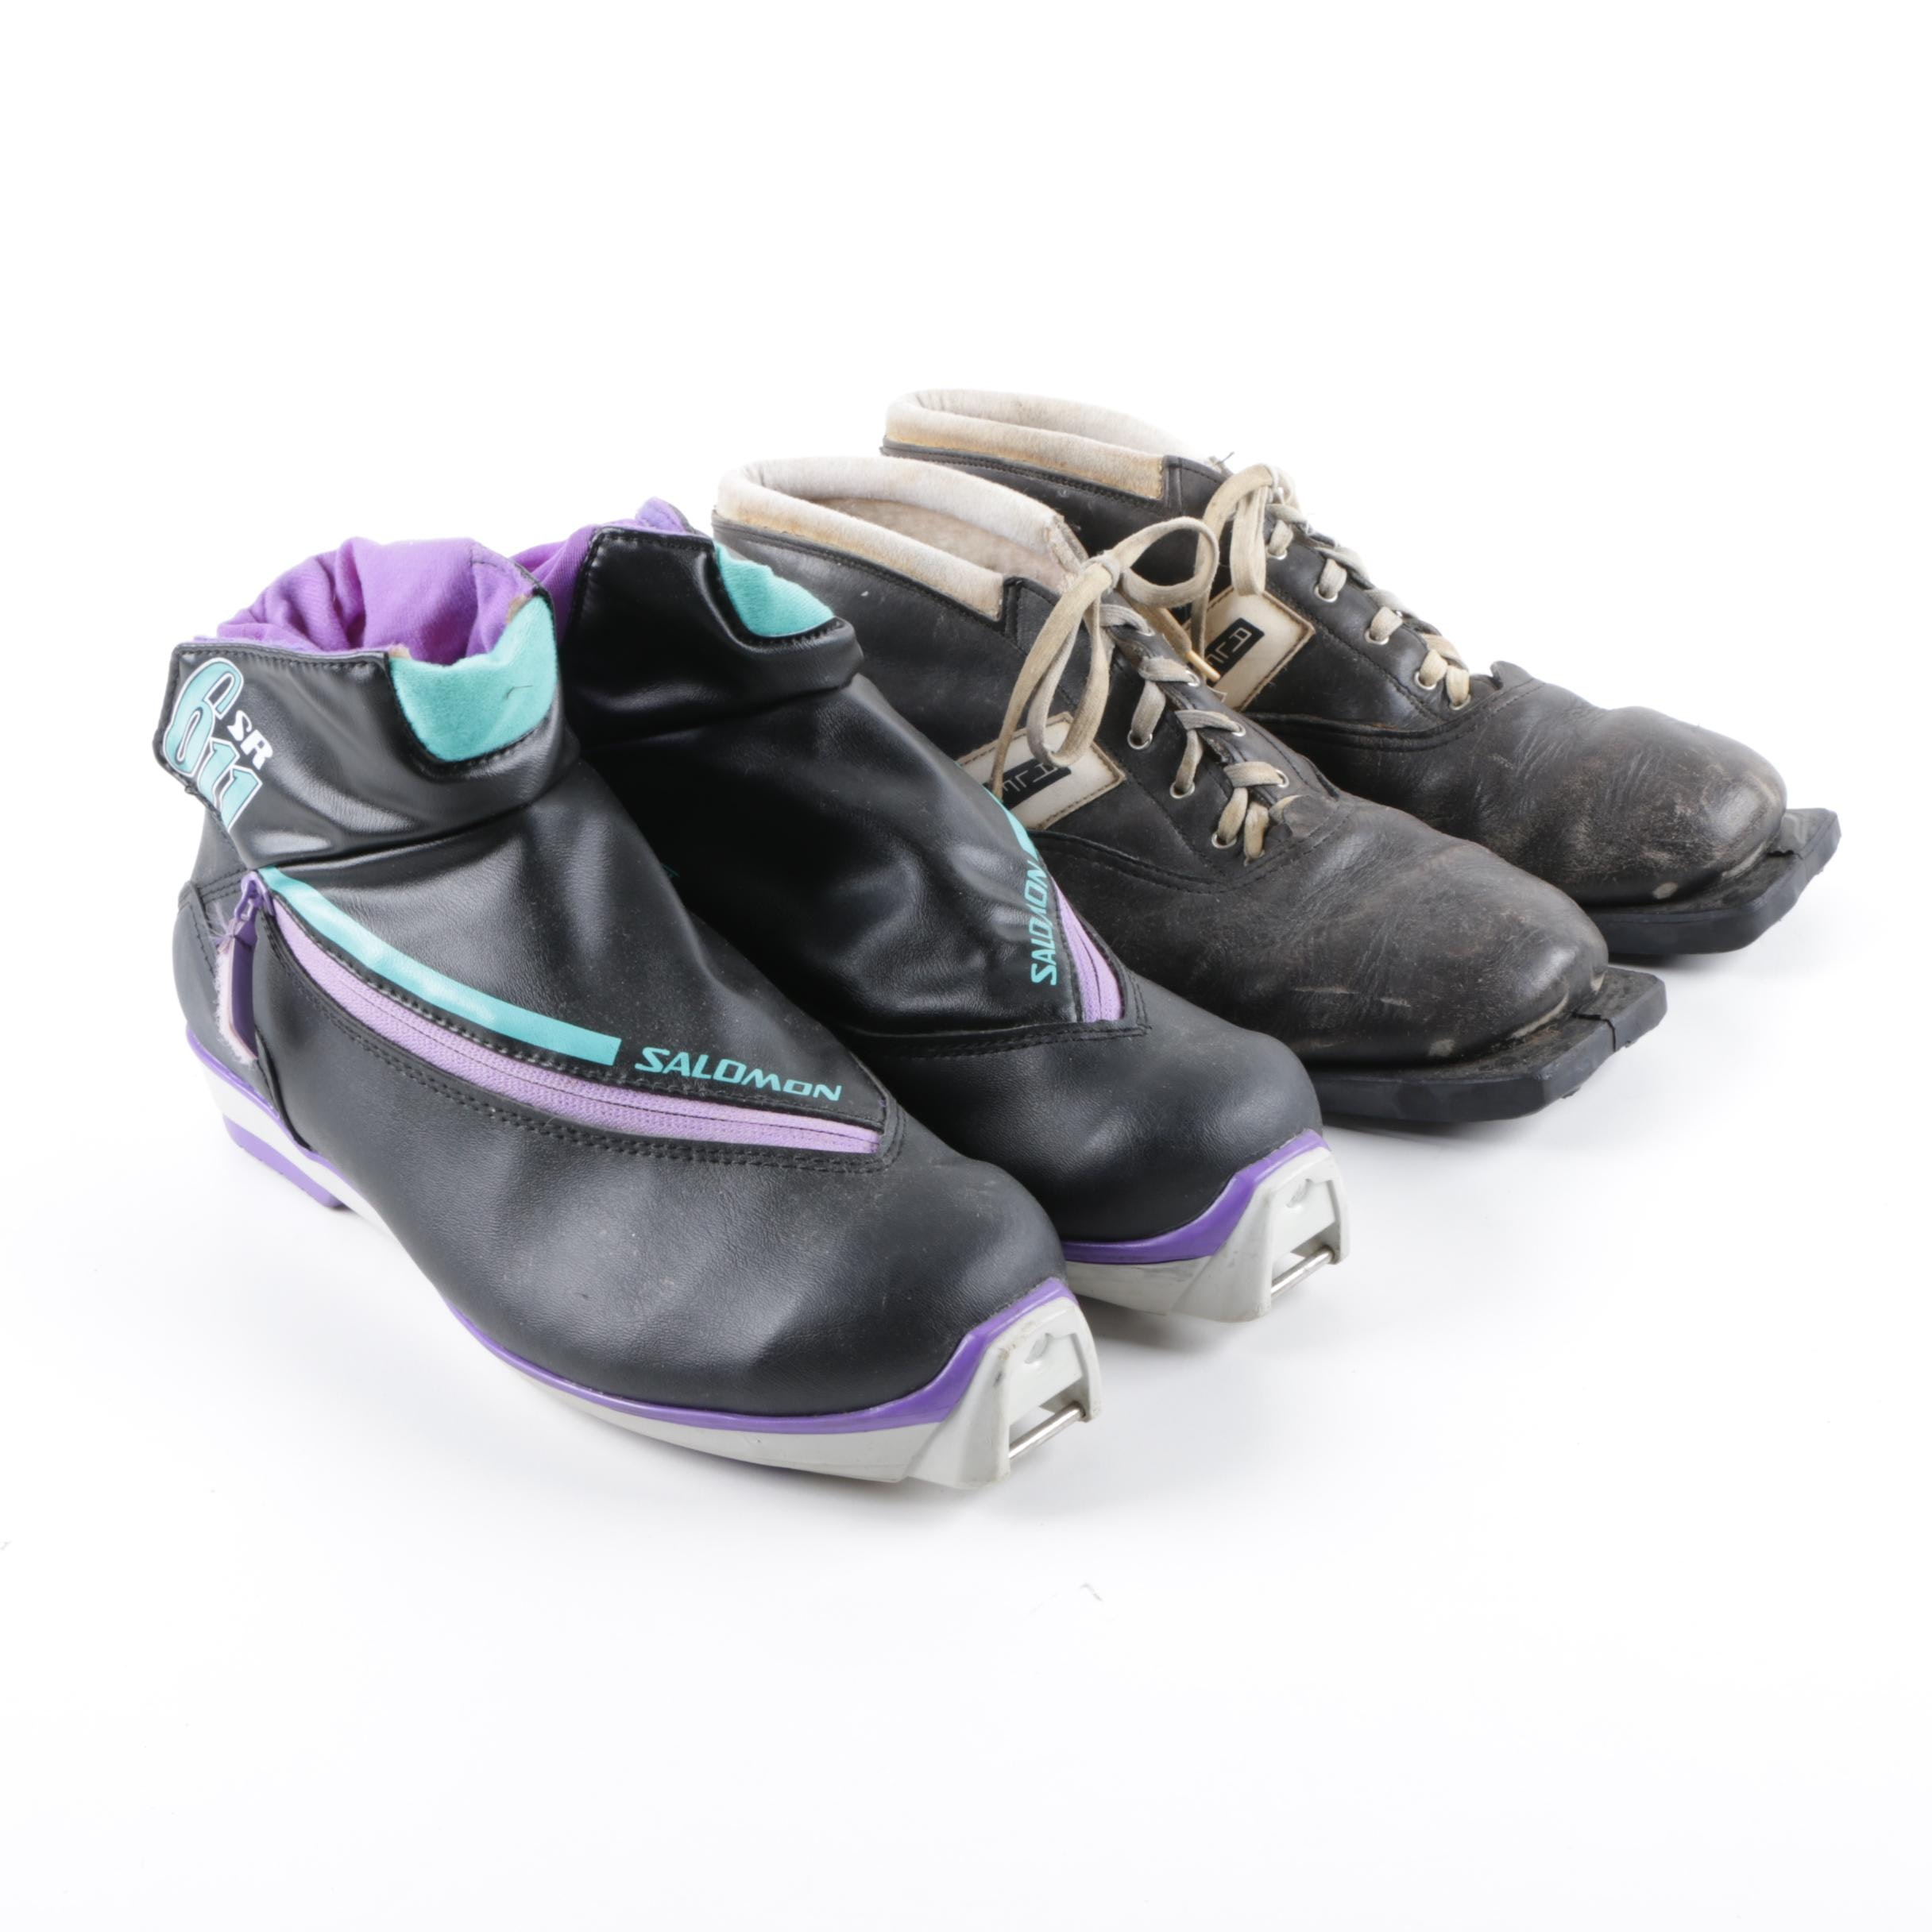 Salomon SNS Profil Cross Country and Vintage Alfa Cross Country Ski Boots